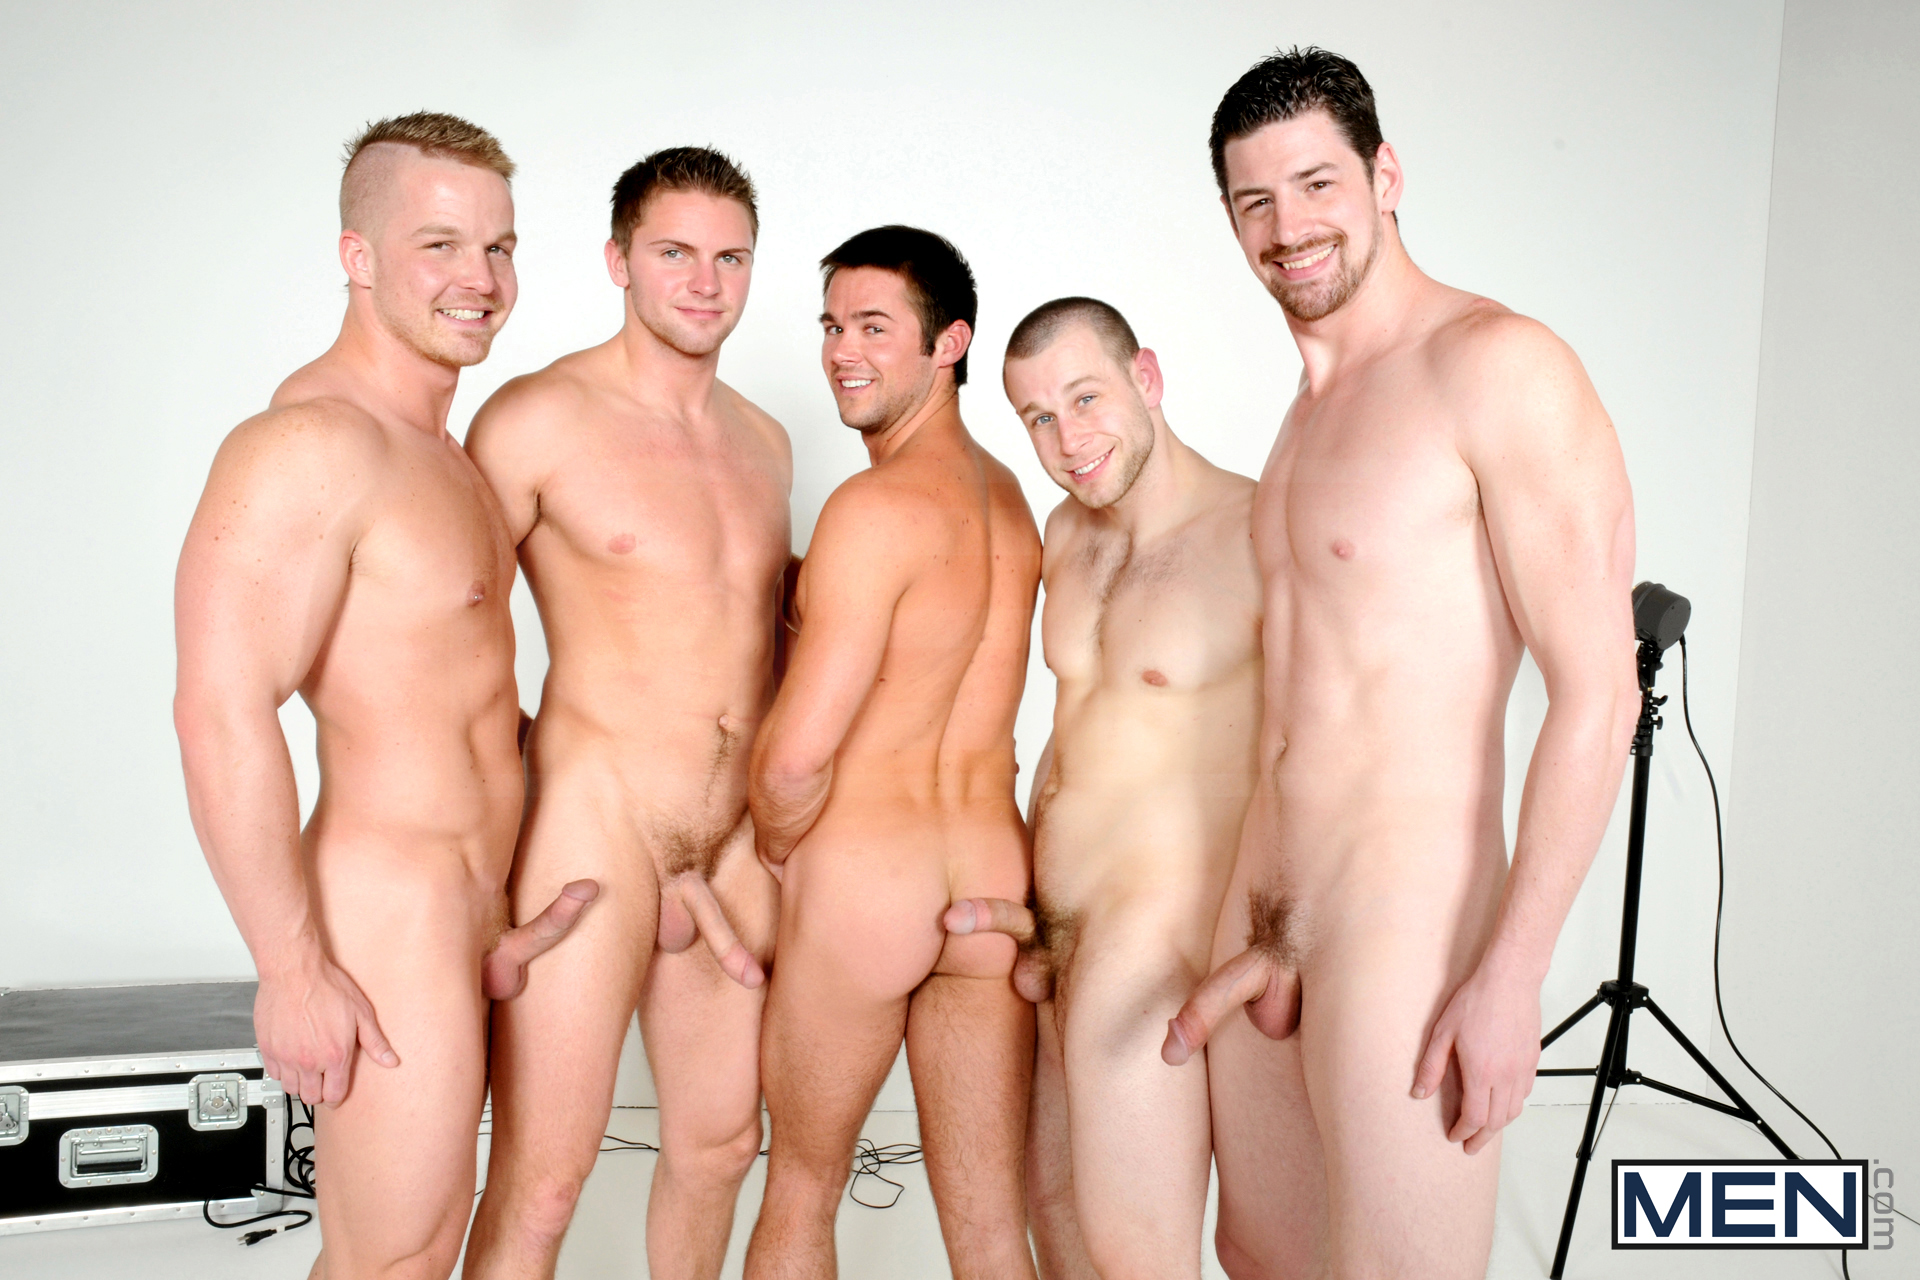 Thought differently, Naked men groups apologise